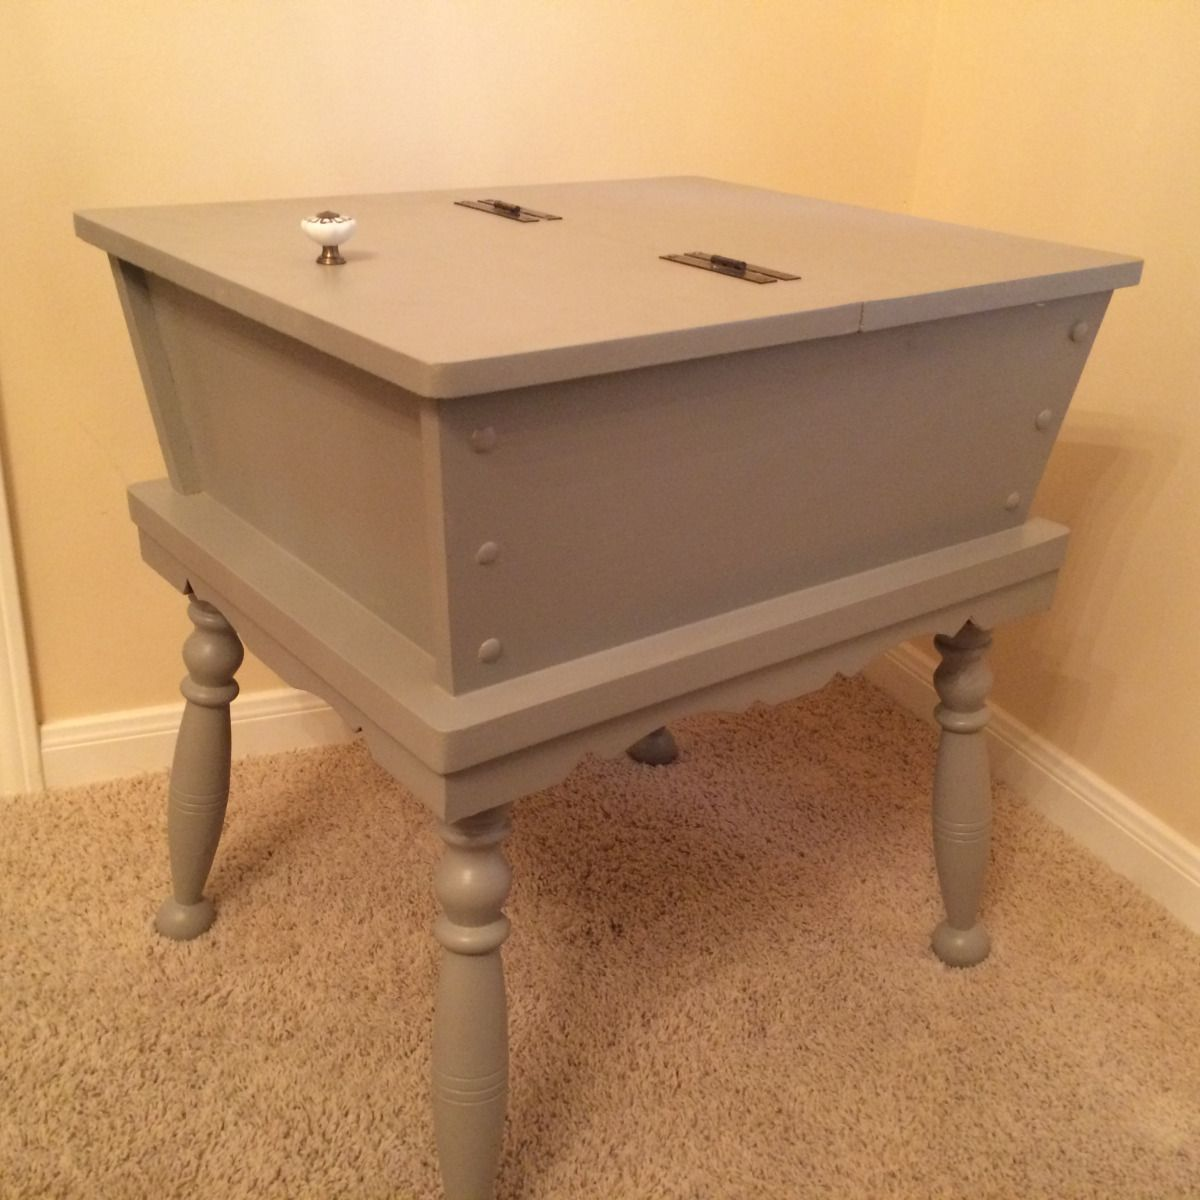 Dough Box End Table | Pinterest | Box, Paint furniture and Living rooms